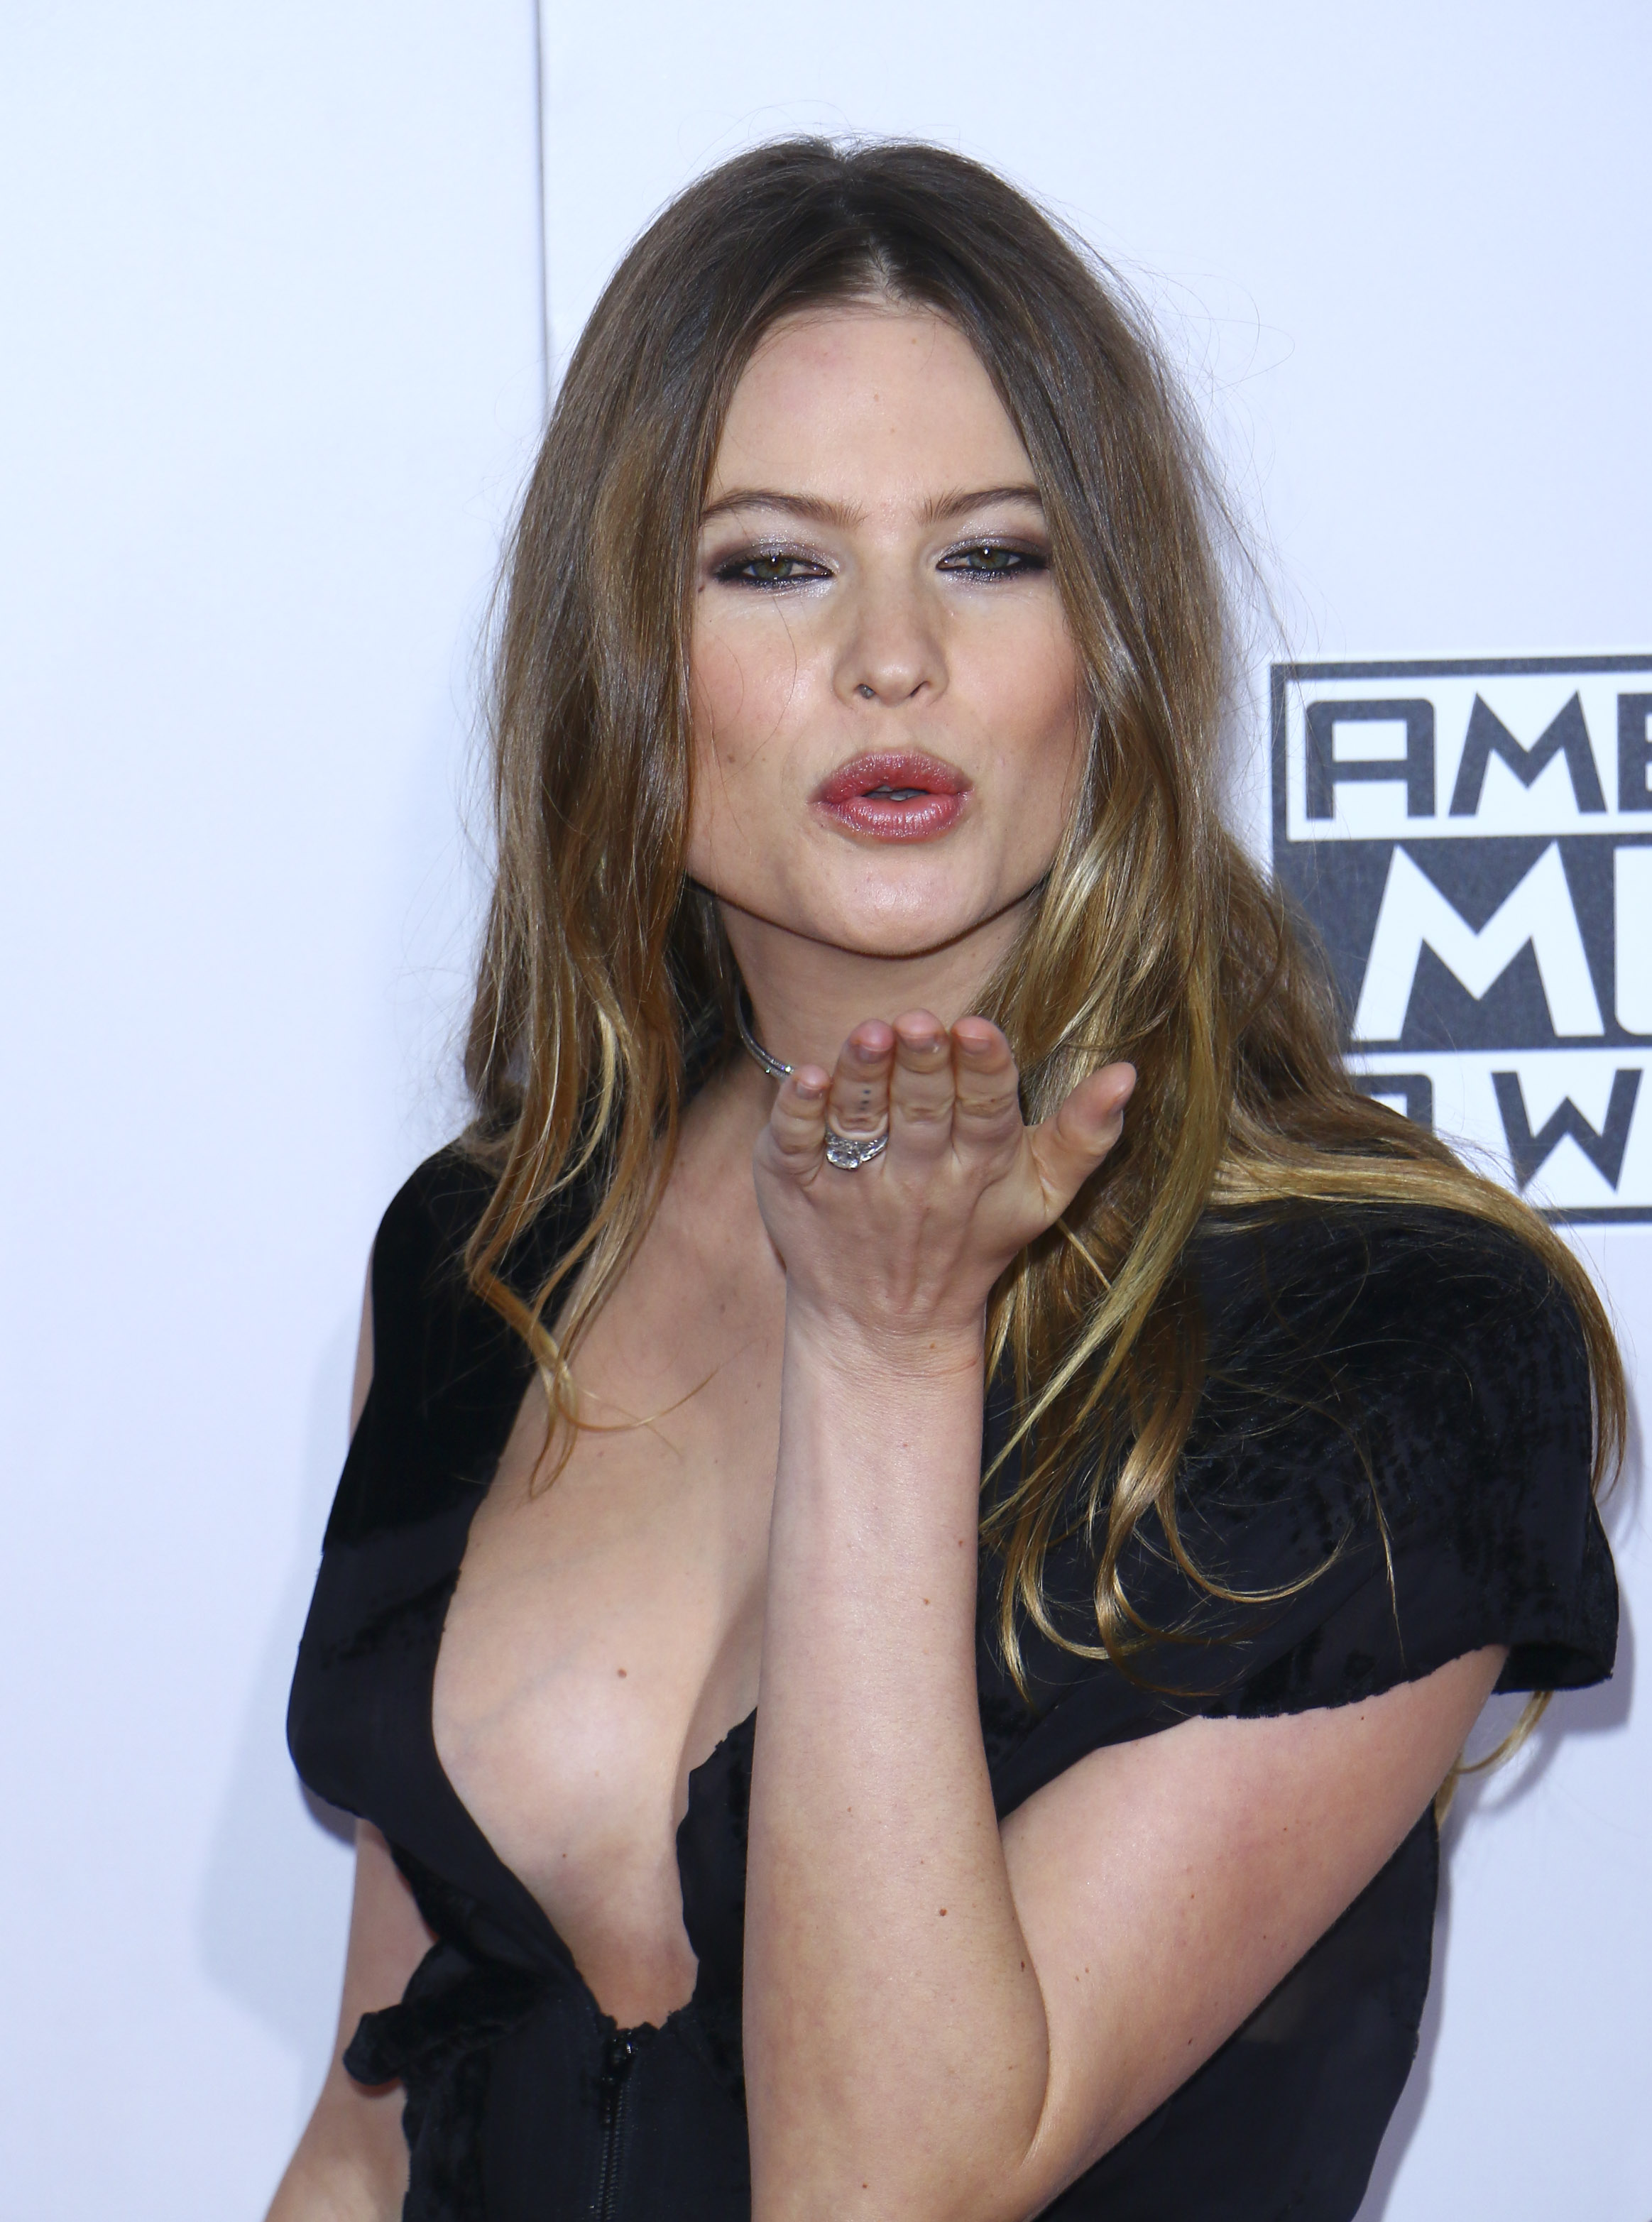 Behati blows a kiss at the cameras. (Photo credit: Splash News)